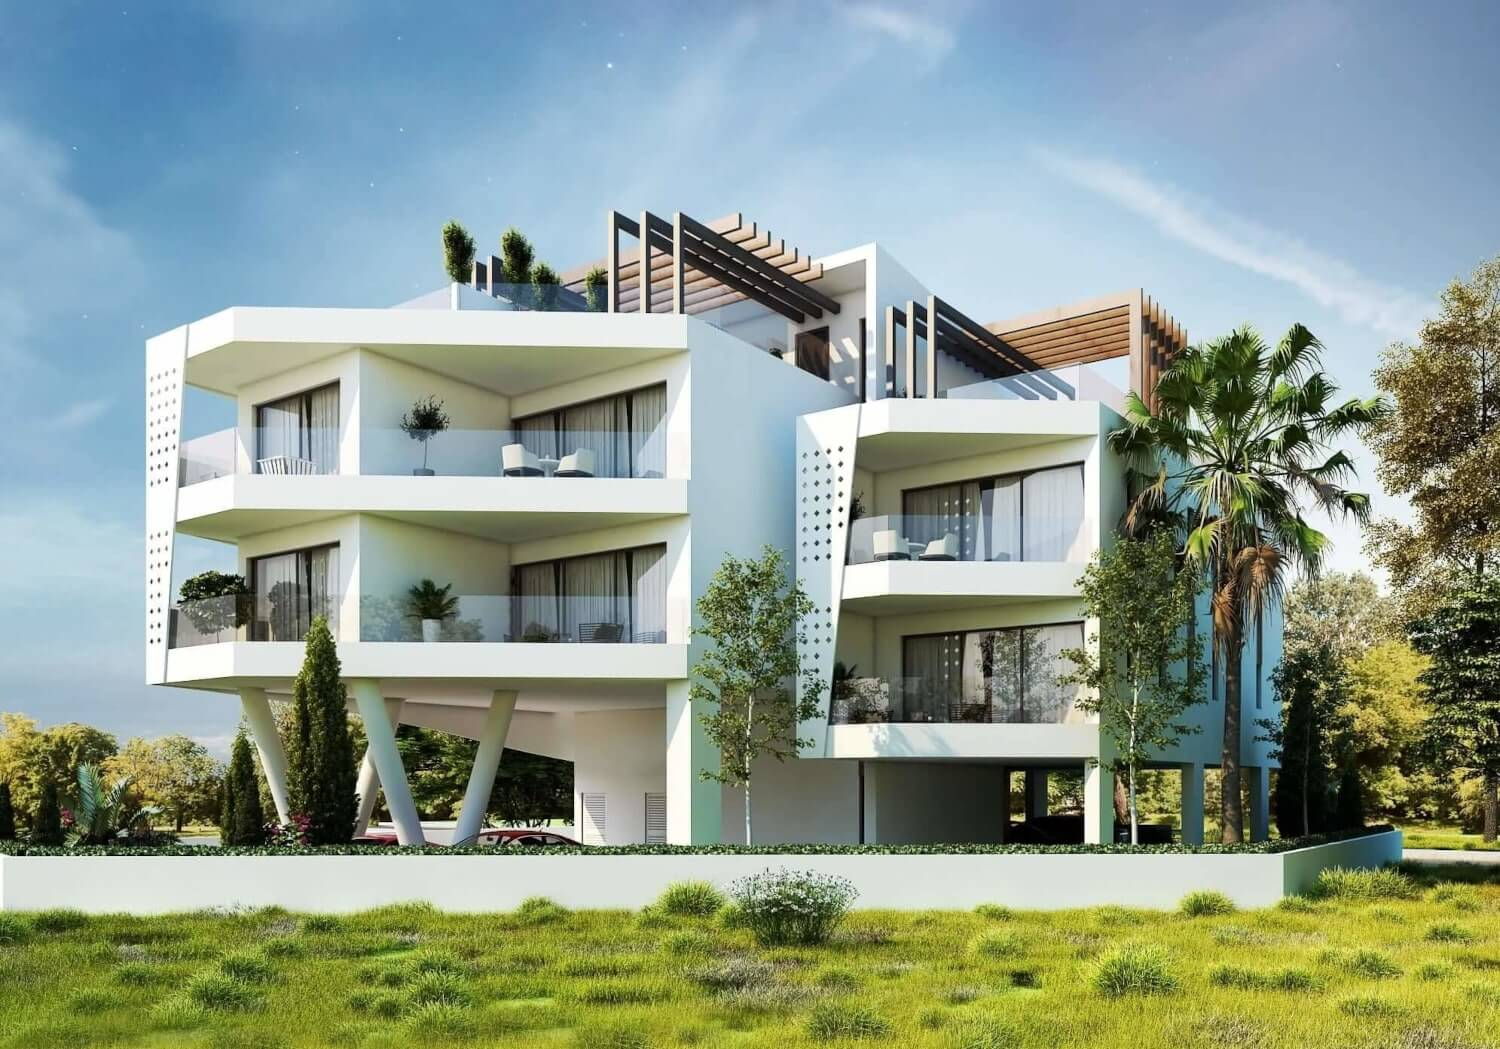 Indigo residence design by our architecture firm